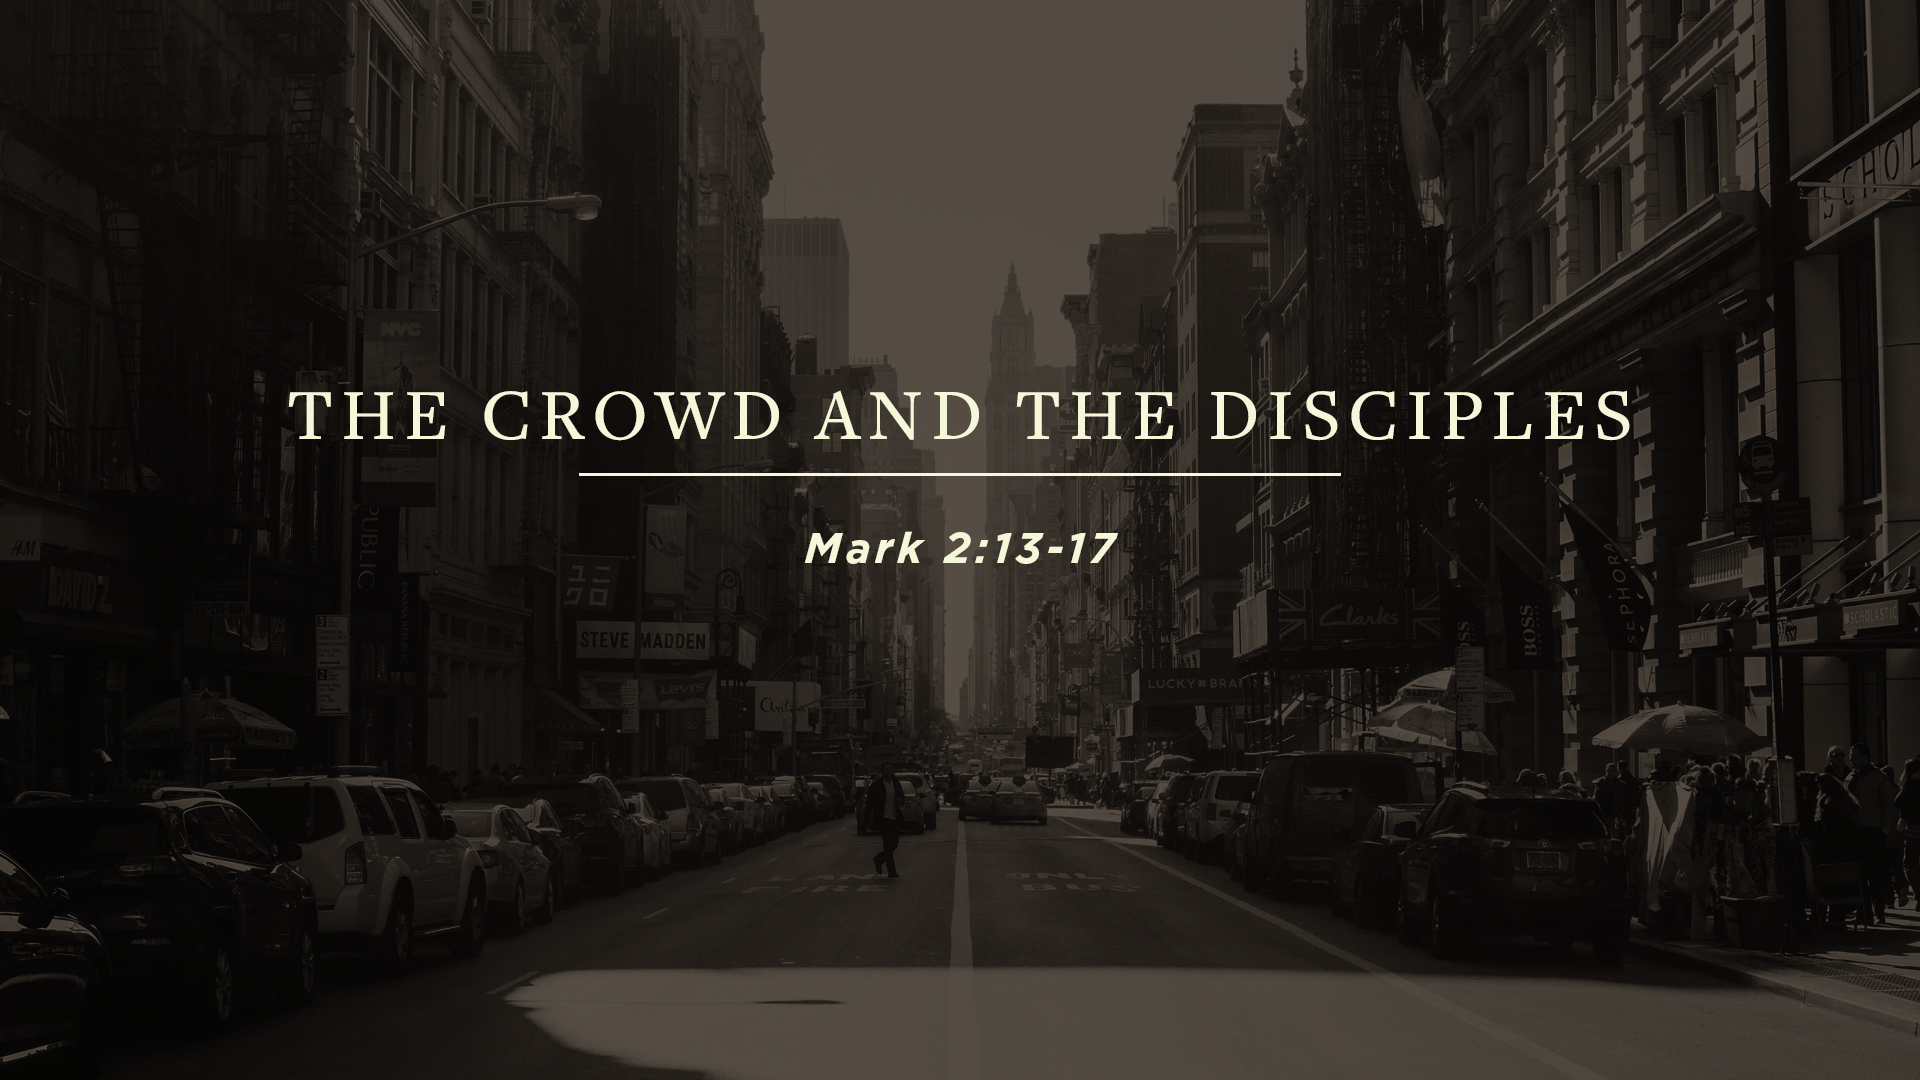 The Crowd and the Disciples